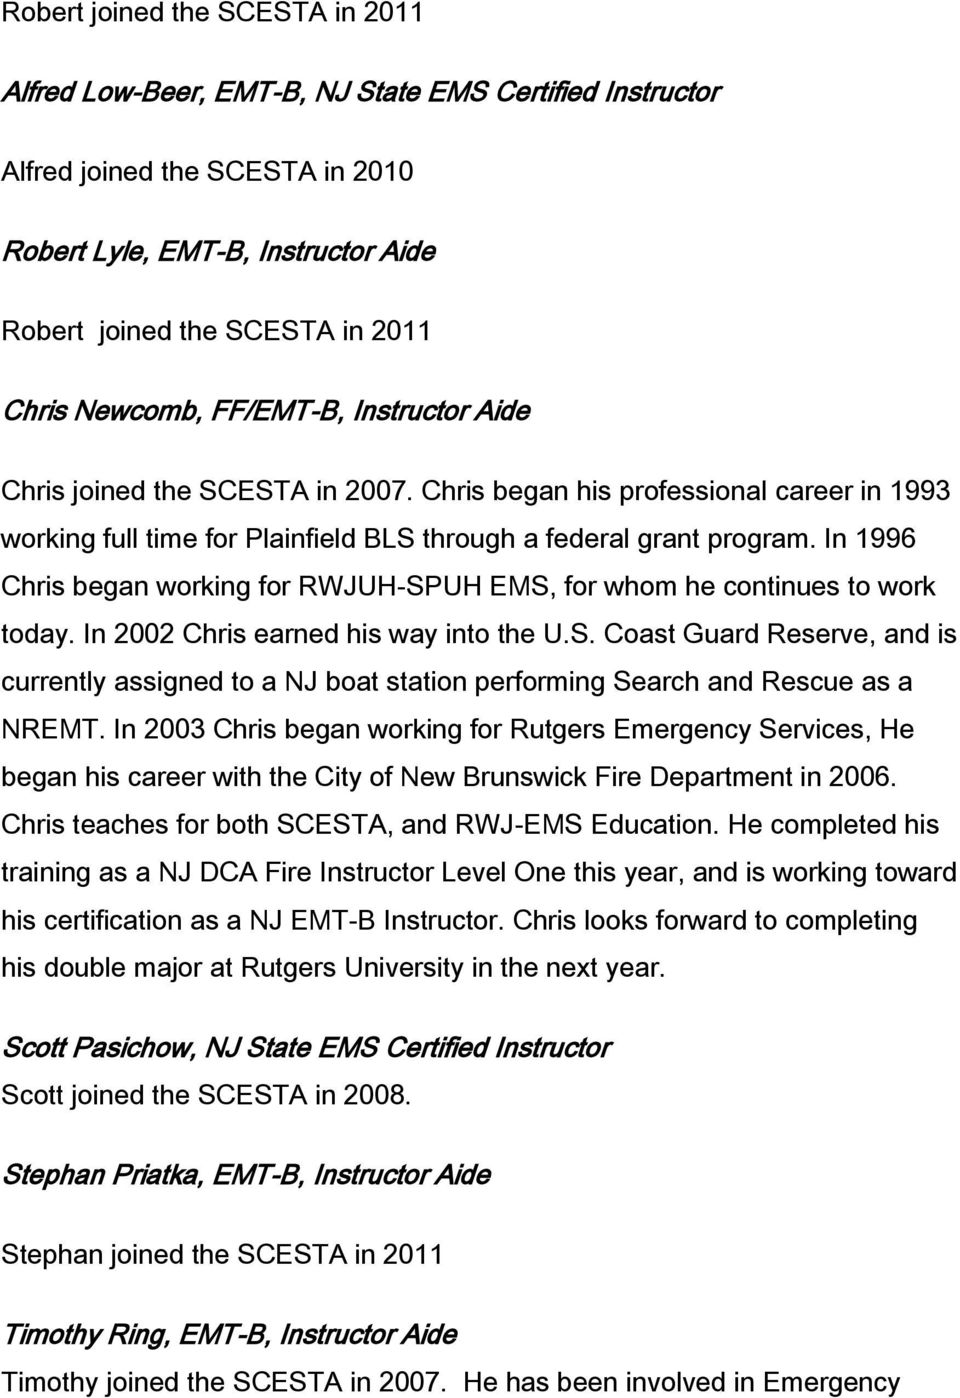 In 1996 Chris began working for RWJUH-SPUH EMS, for whom he continues to work today. In 2002 Chris earned his way into the U.S. Coast Guard Reserve, and is currently assigned to a NJ boat station performing Search and Rescue as a NREMT.